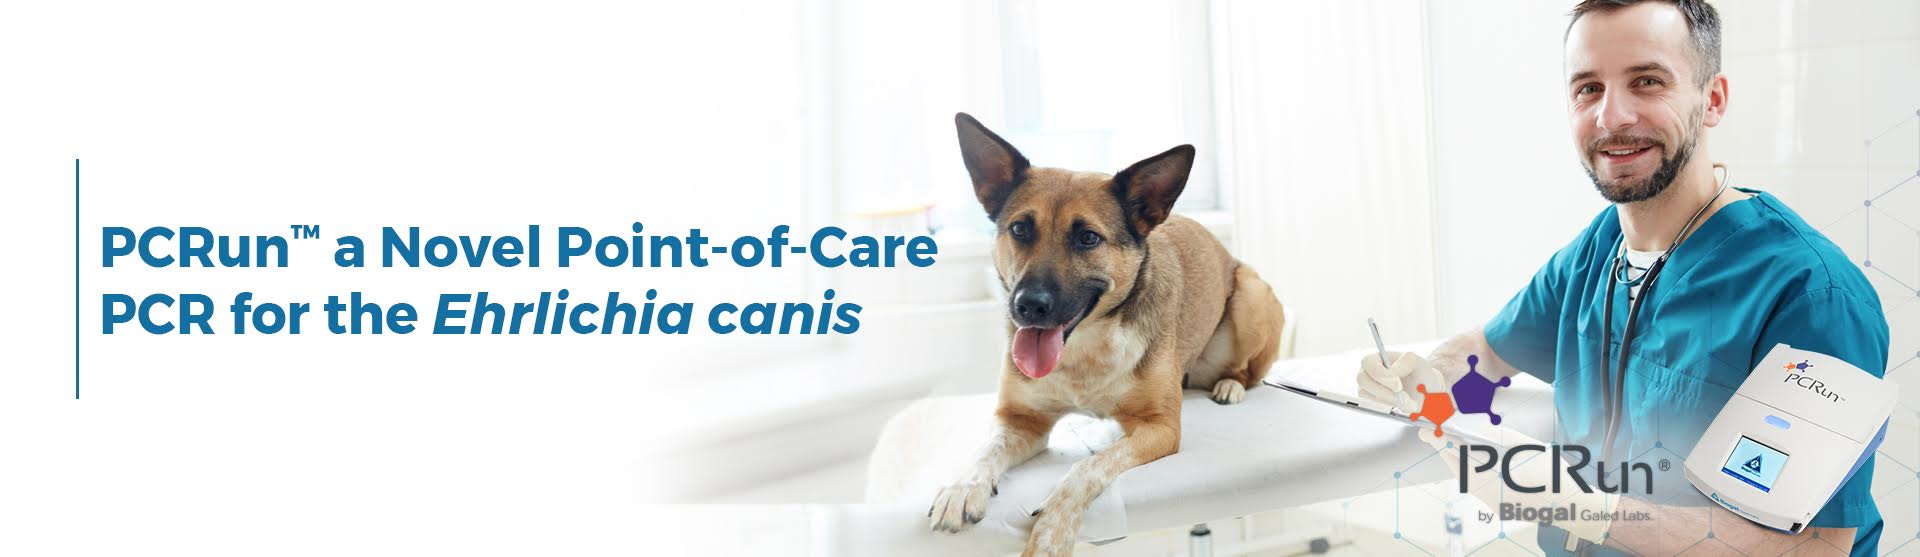 PCRun a Novel Point-of-Care PCR for the Ehrlichia canis